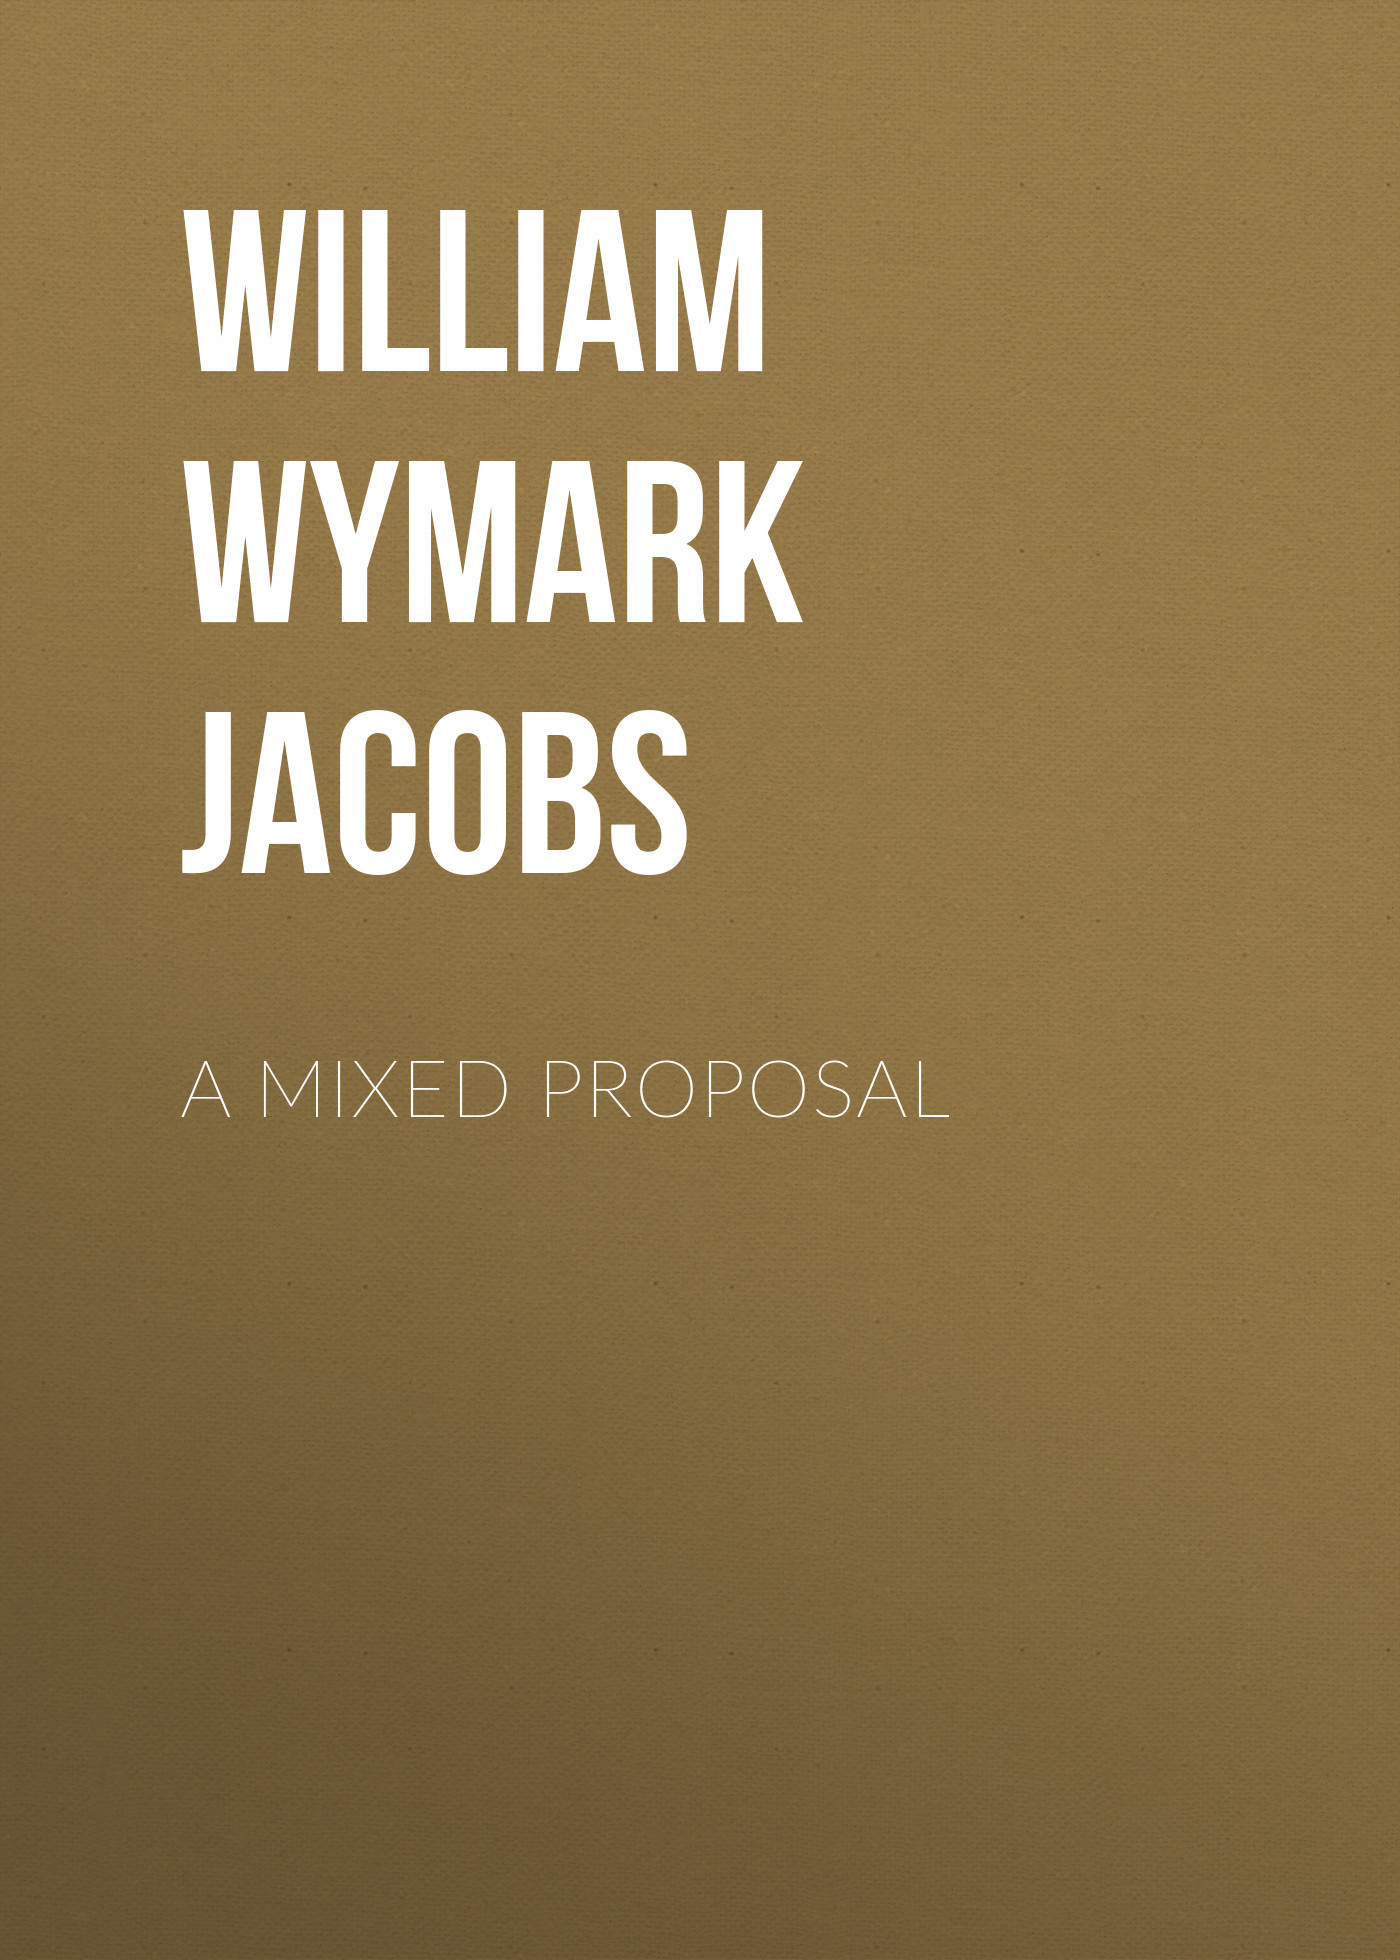 William Wymark Jacobs A Mixed Proposal